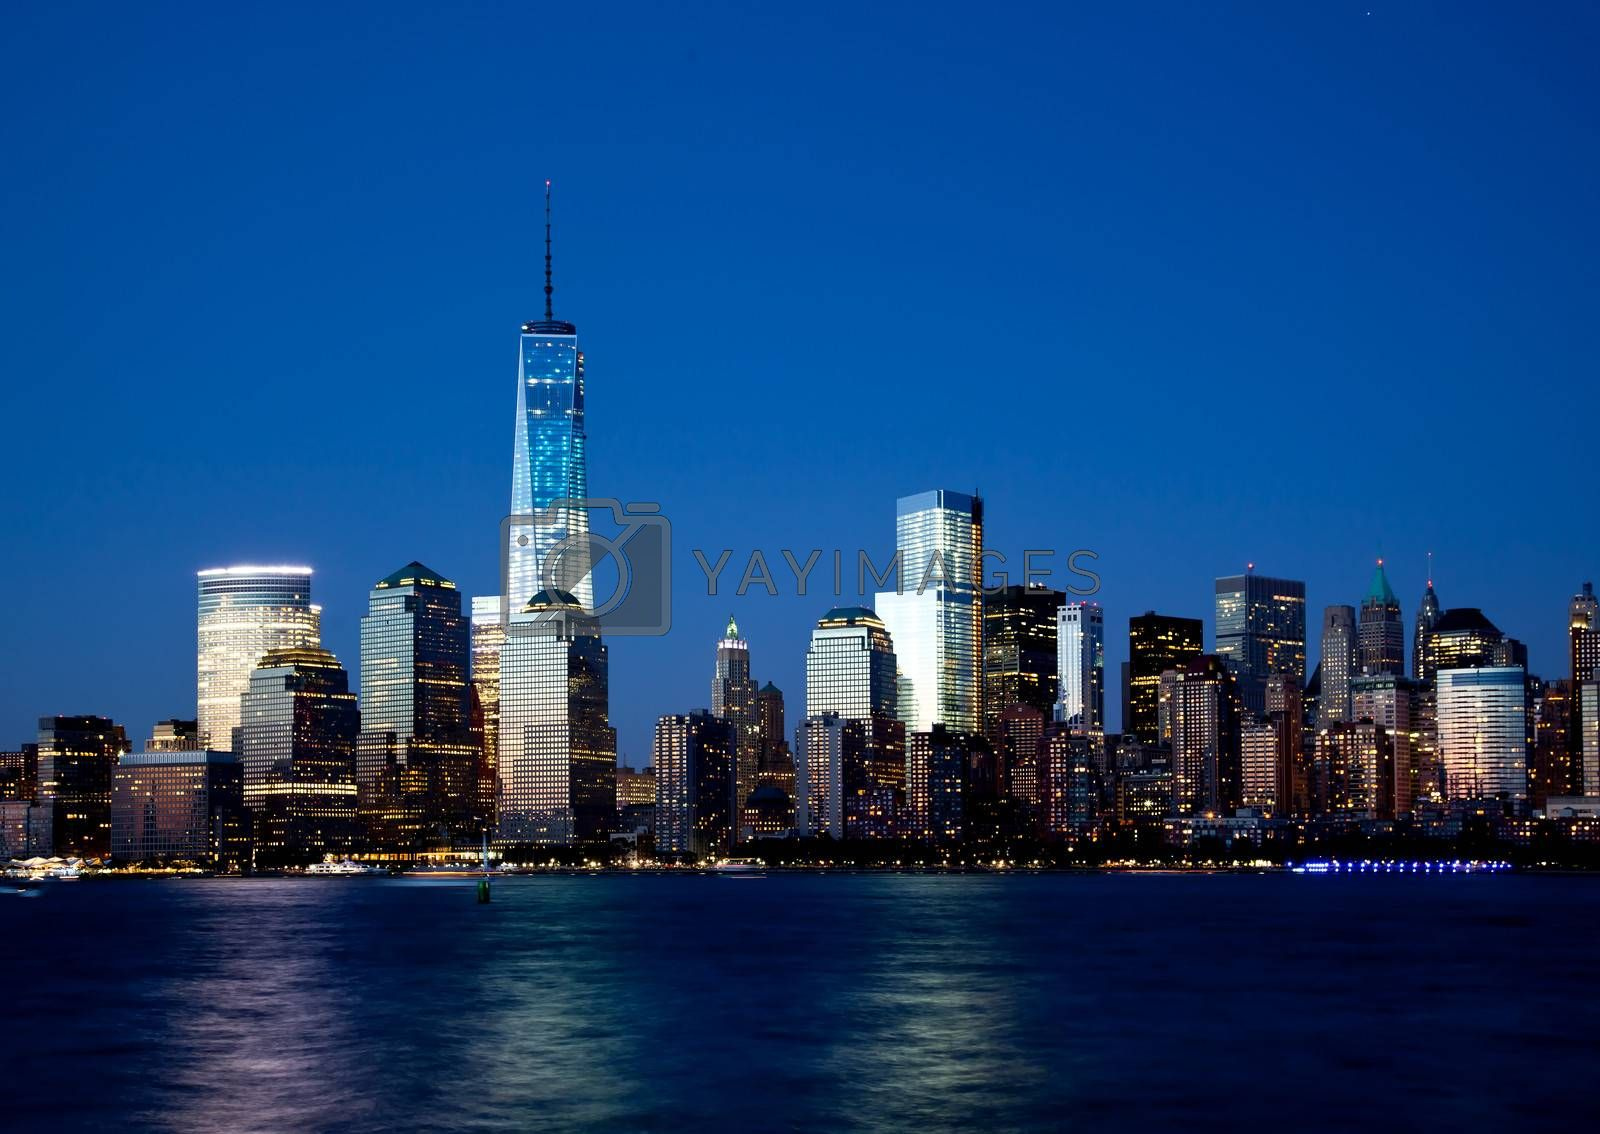 The new Freedom Tower and Lower Manhattan Skyline At Night